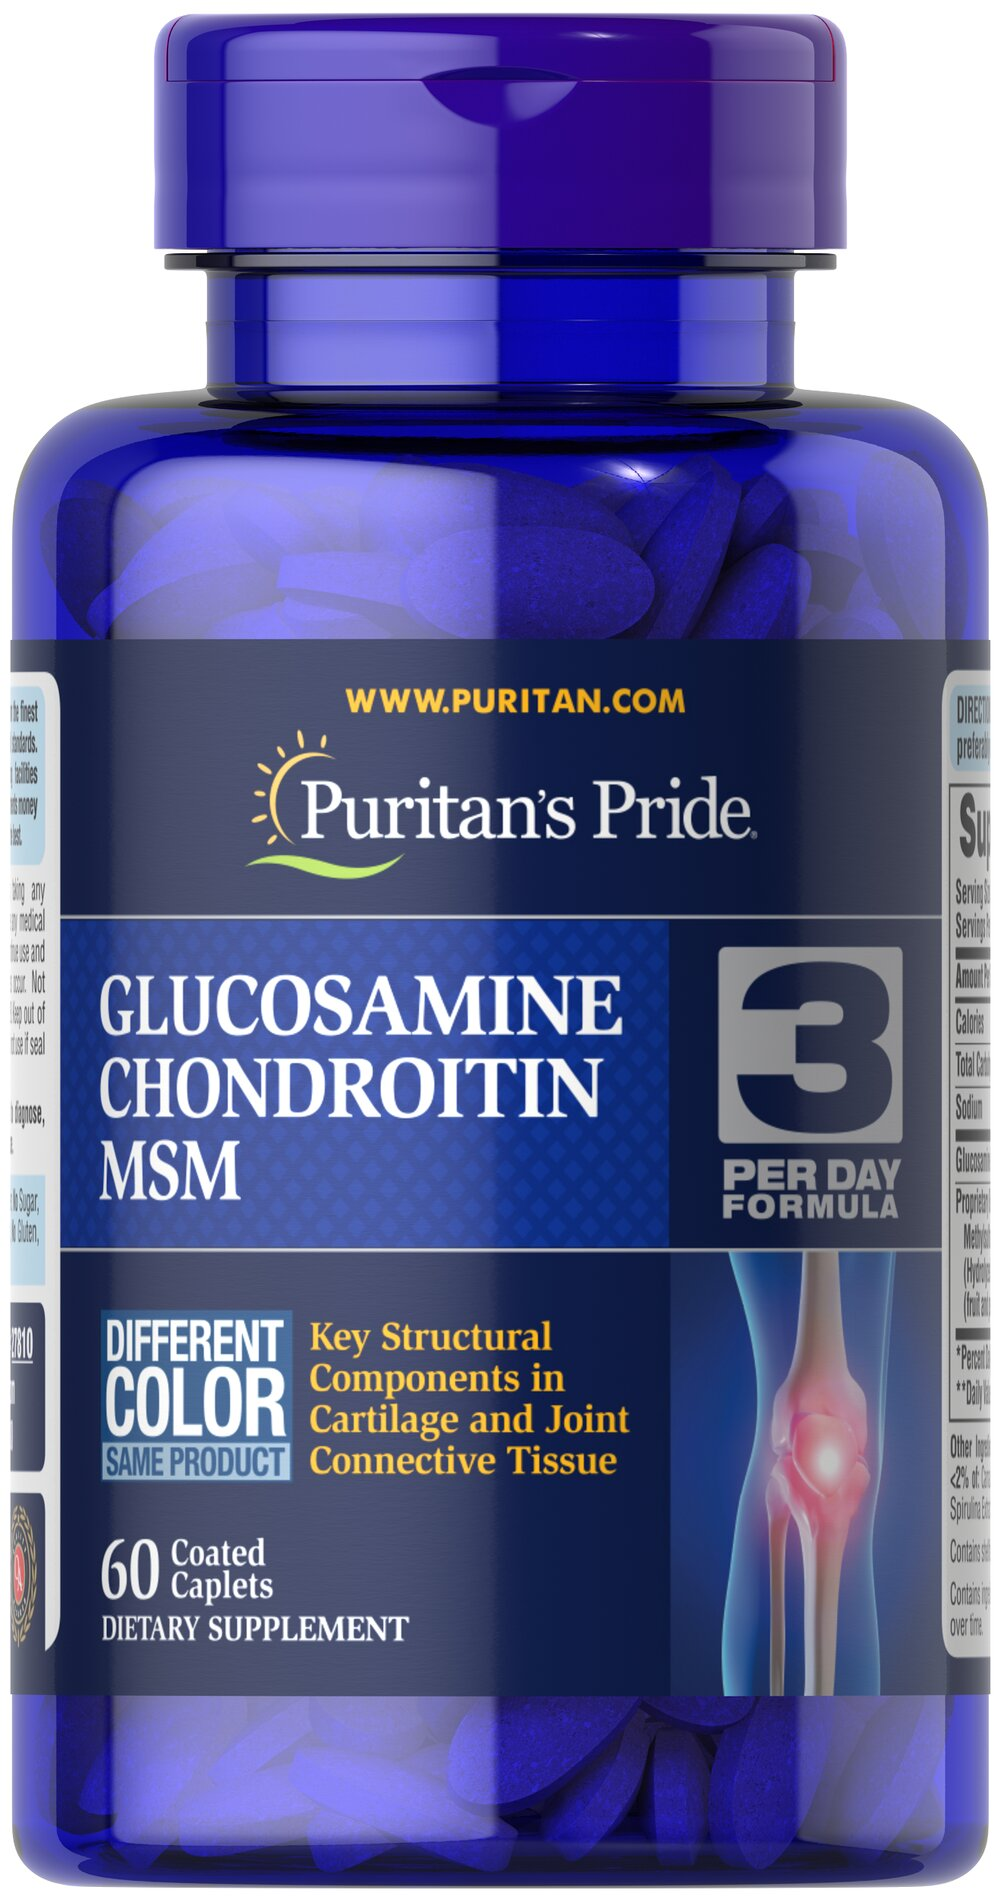 Double Strength Glucosamine, Chondroitin & MSM Joint Soother® <p>Combines the top three structural components found in popular joint support products — Glucosamine, Chondroitin and MSM — with amino and herbal support from Collagen and Boswellia Serrata**</p><p>This high-quality formula delivers 1,500 mg of Glucosamine HCl to help nourish and support cartilage, and helps with occasional joint stress due to exercise or physical activity**</p> 60 Caplets  $14.99